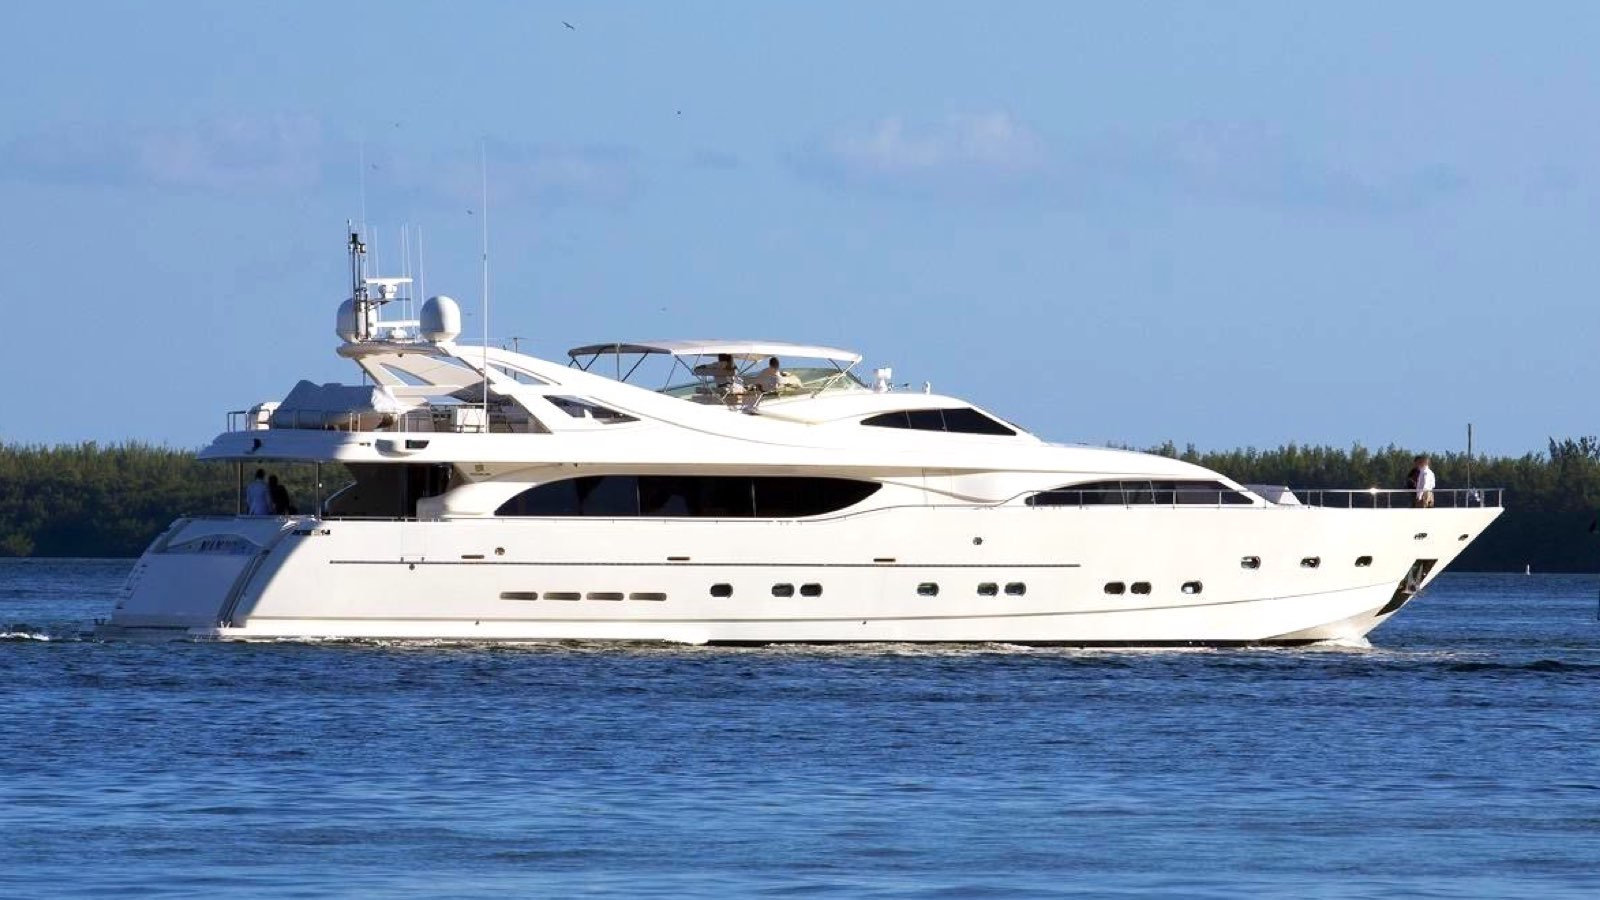 Mambo Yacht for Sale - IYC